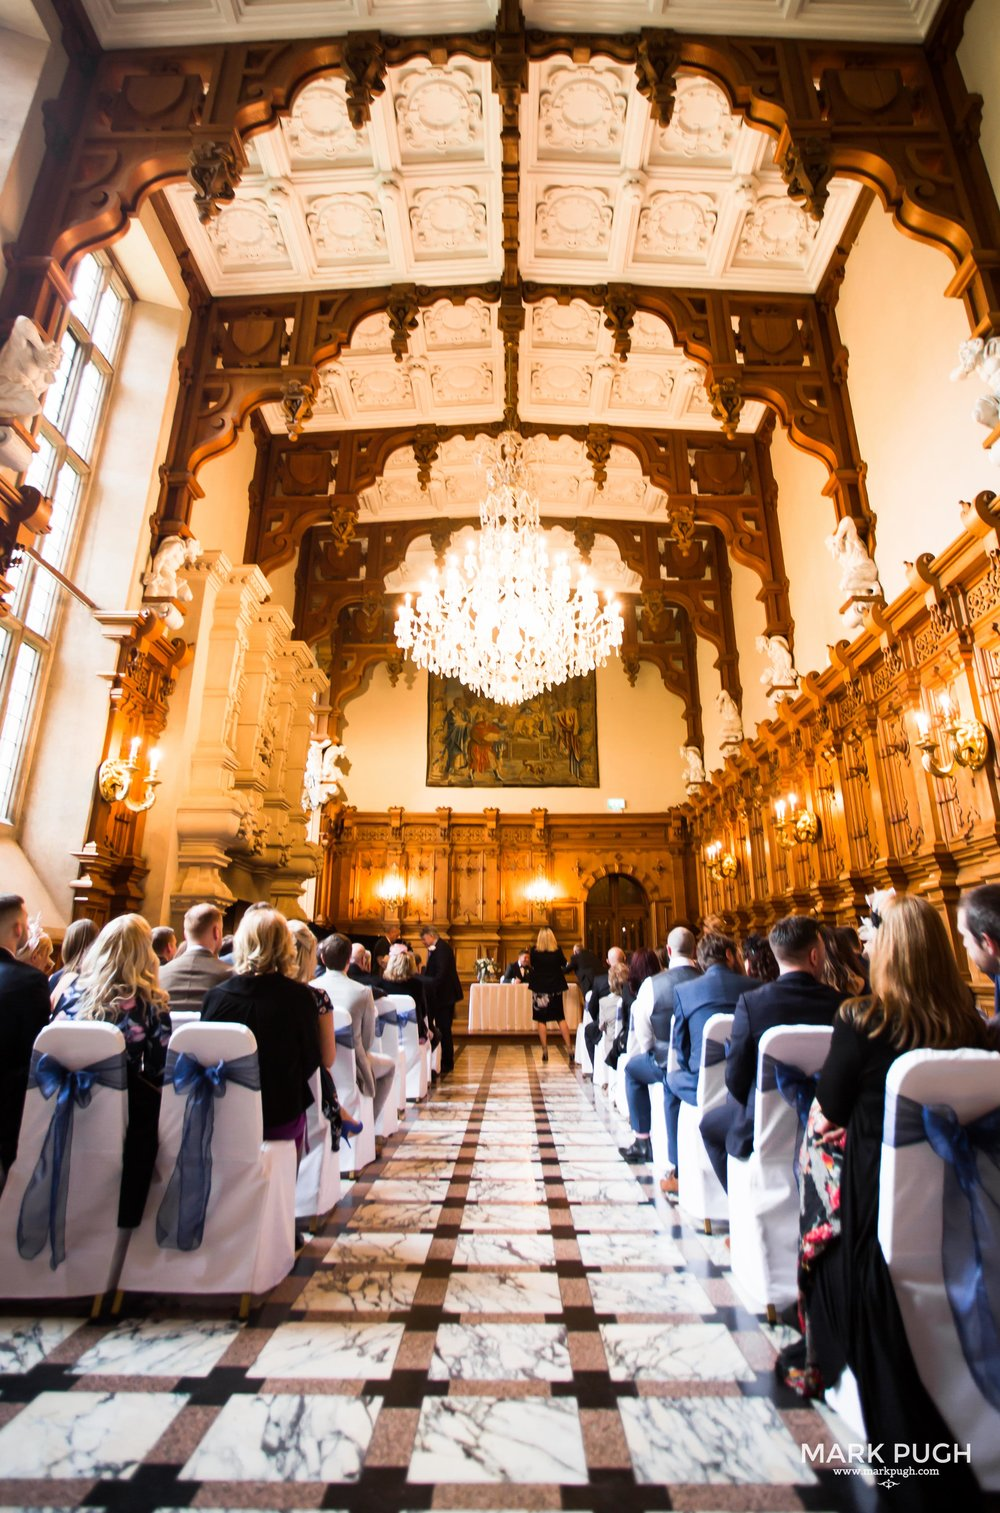 059 - Lauren and Sam - fineART wedding photography at Harlaxton Manor by www.markpugh.com Mark Pugh of www.mpmedia.co.uk_.JPG